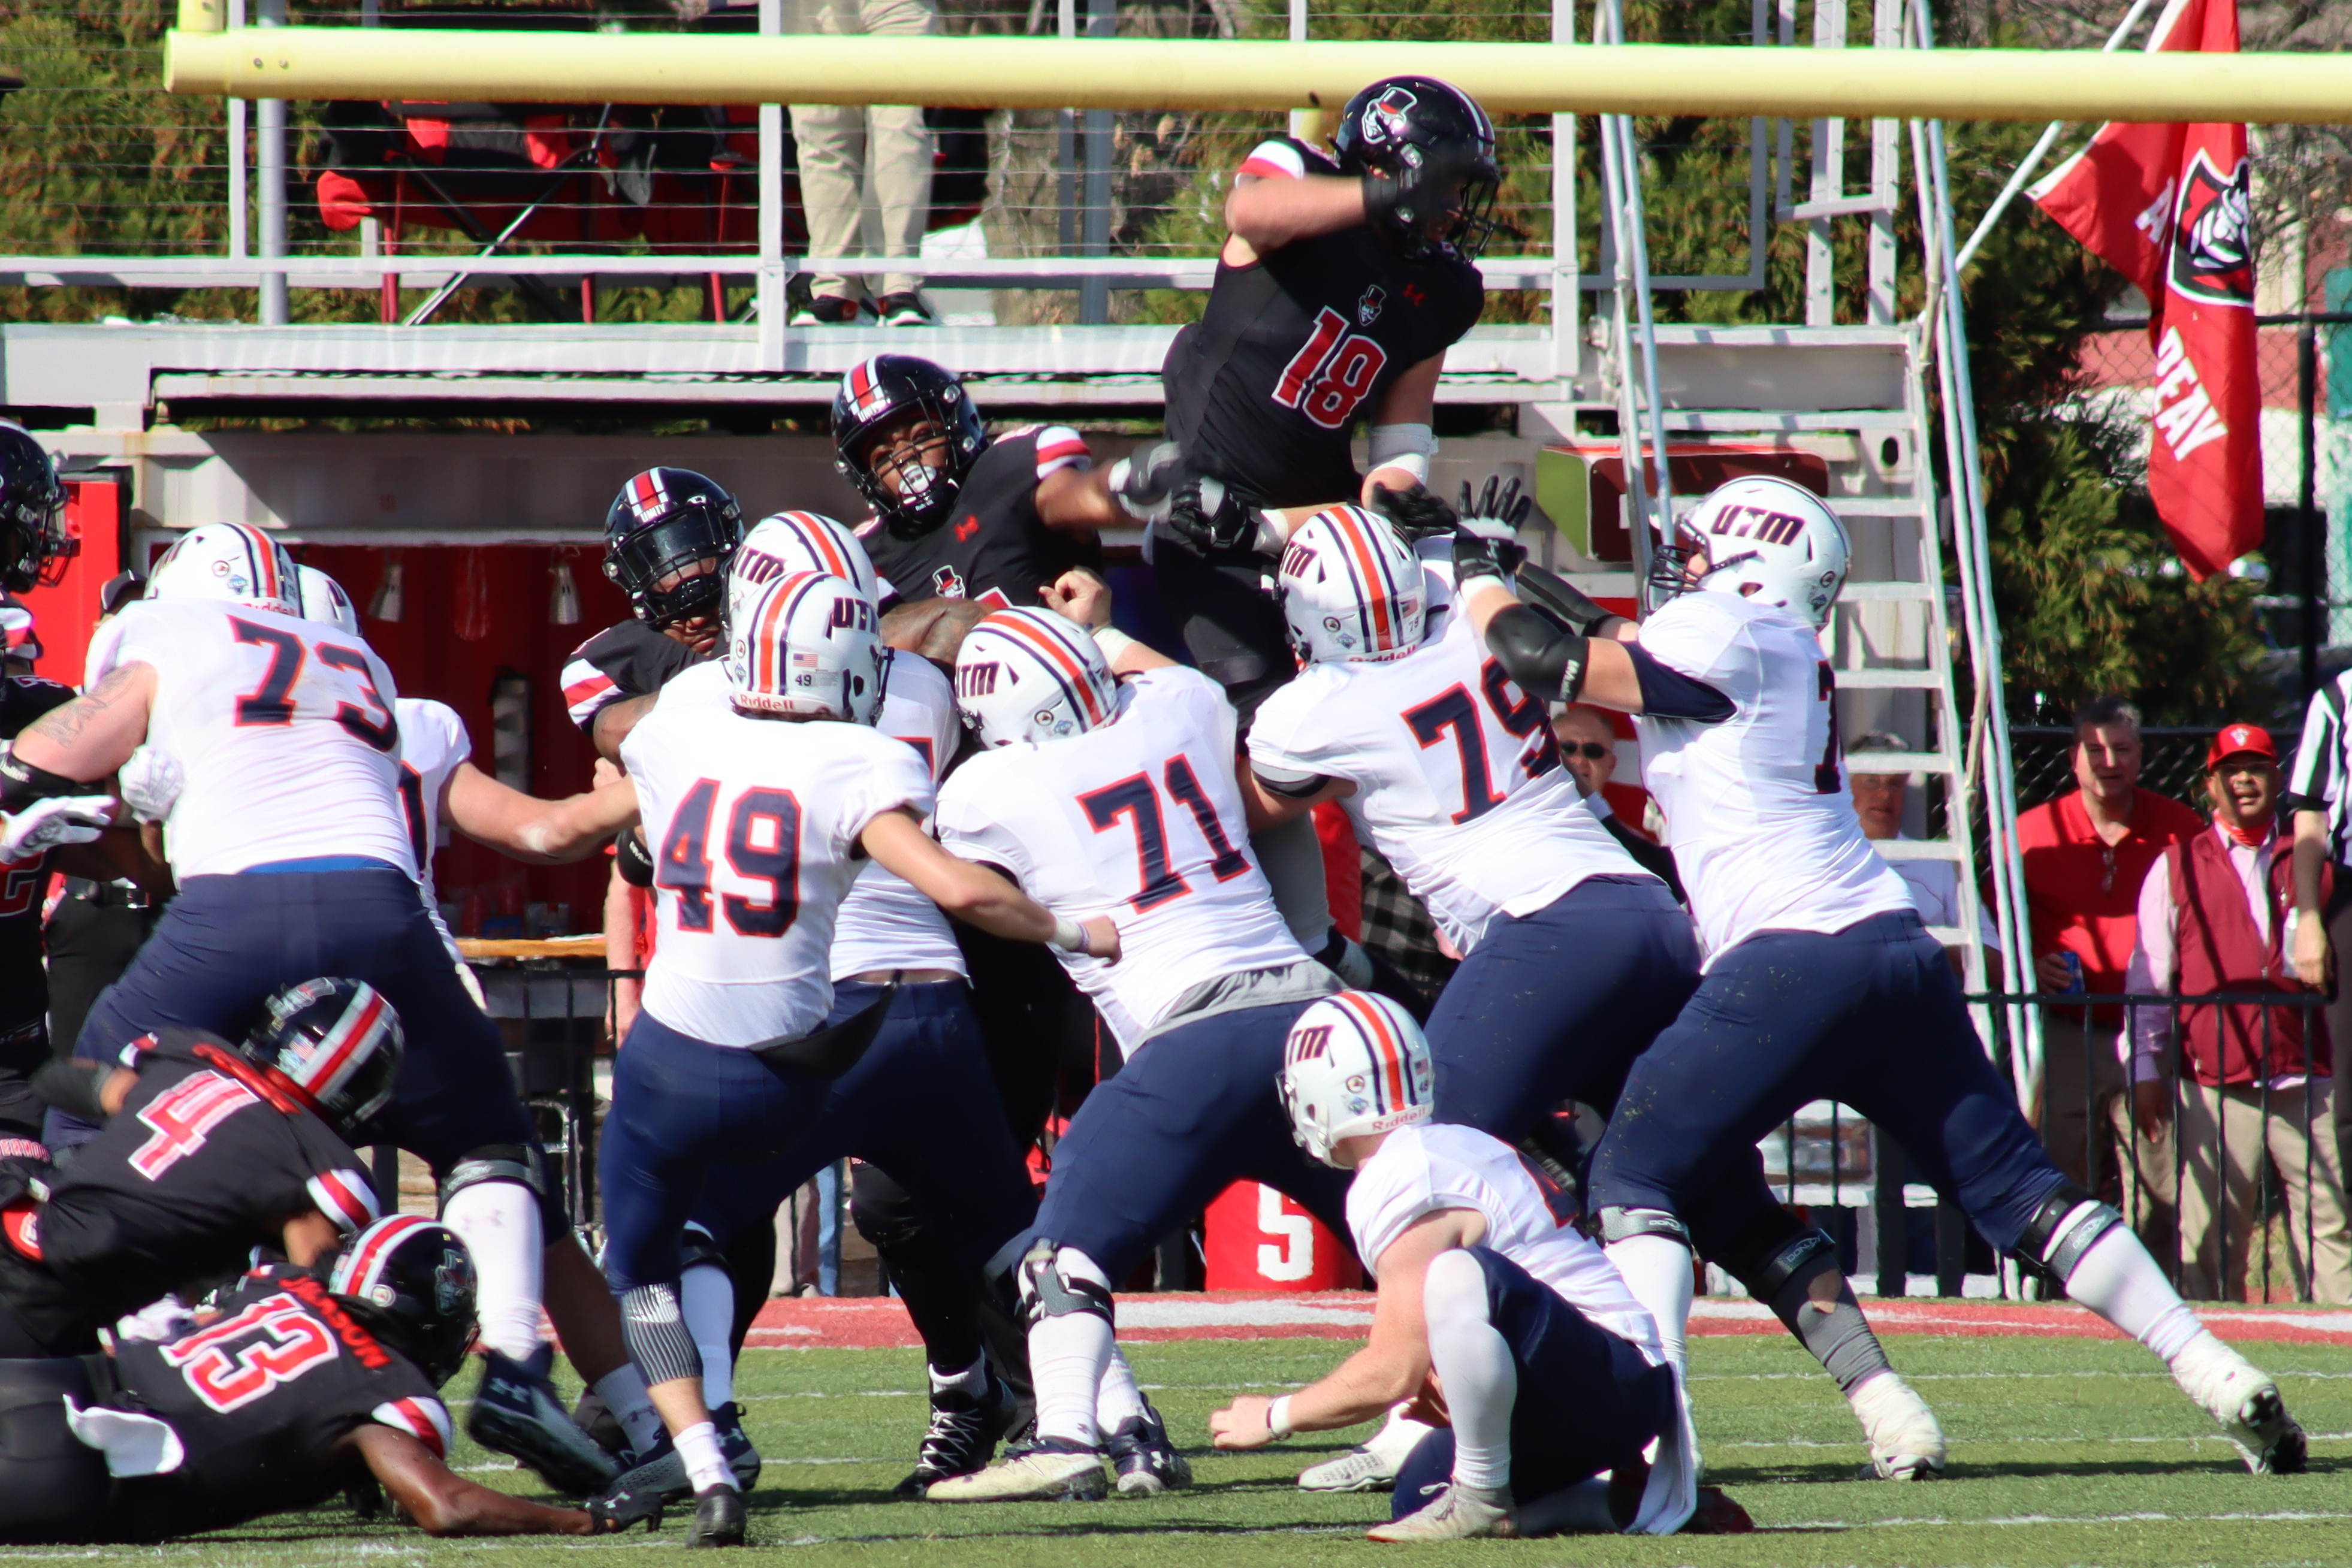 Jack McDonald (18) attempts to block a field goal from UT Martin's Tyler Larco (49). NICHOLE BARNES | THE ALL STATE